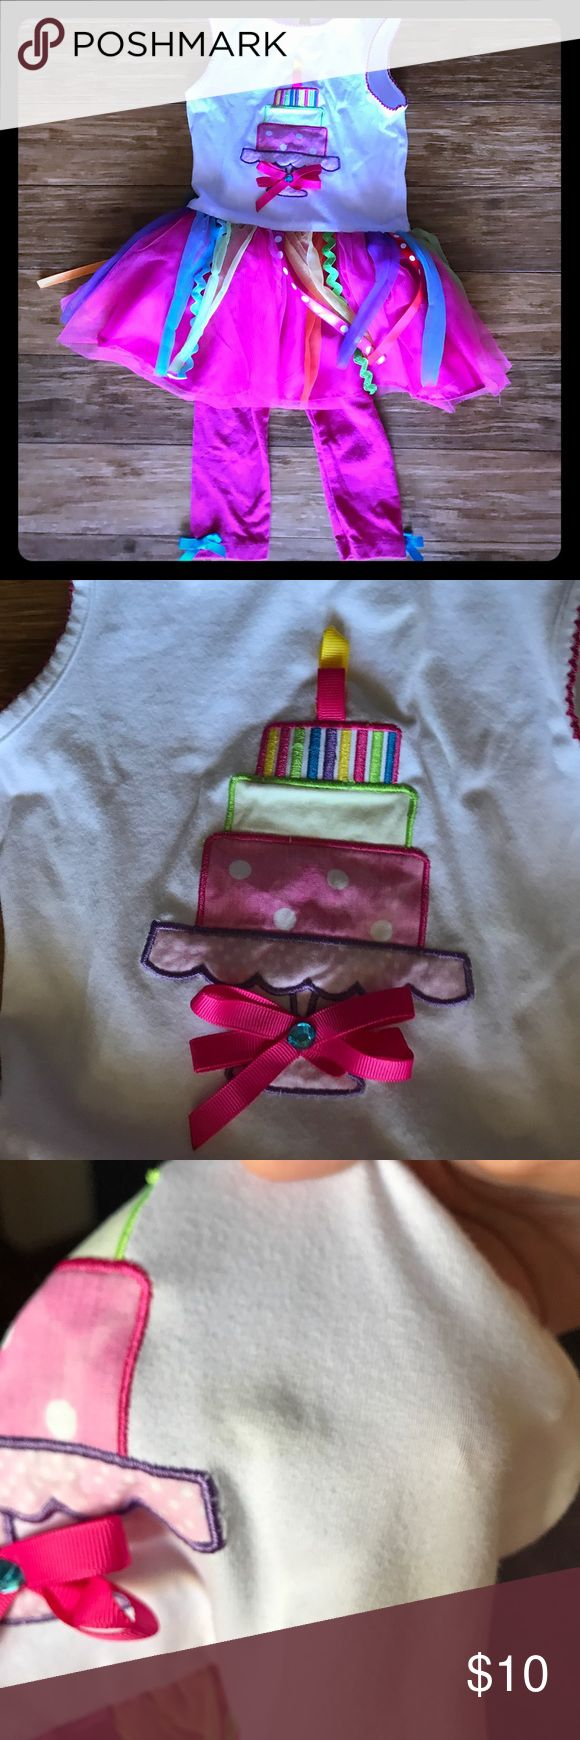 Free with Bundle Happy Birthday Outfit Adorable Rare Editions tunic and Leggings Set! Perfect for celebrating a Happy Birthday!! There is a stain near the cake noted in the third picture. Make me an offer!! Even better, product is free with bundle of 4 or more items!! Rare Editions Matching Sets